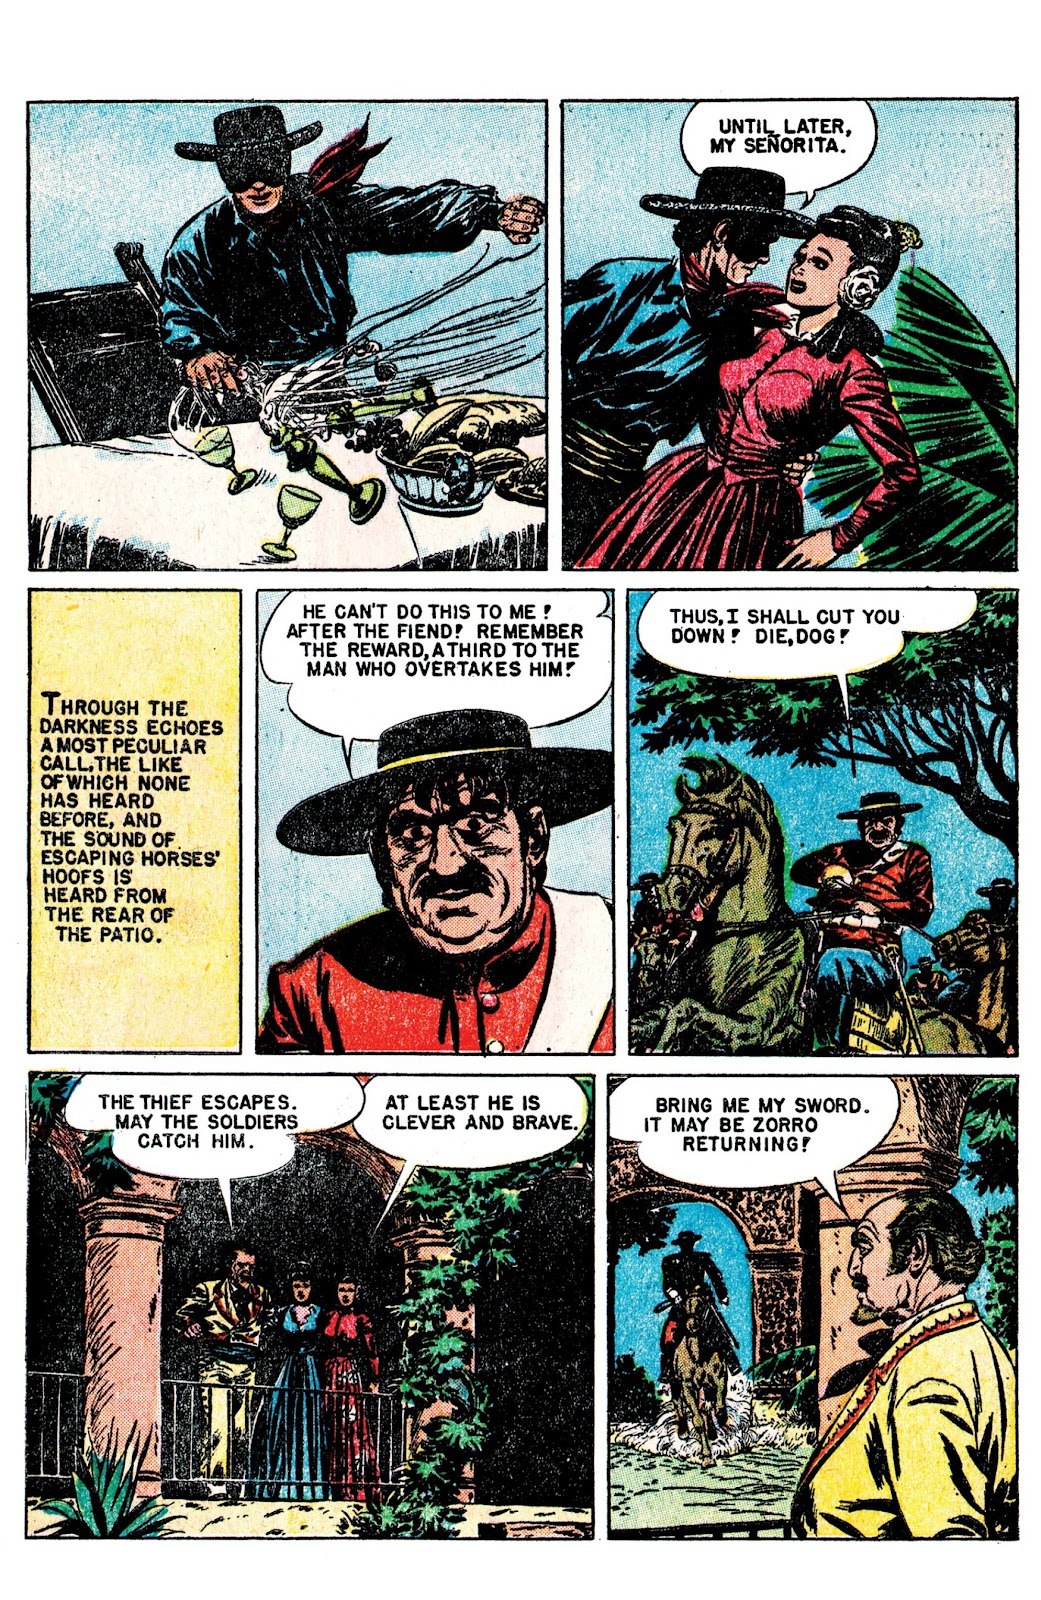 Read online AM Archives: The Mark of Zorro #1 1949 Dell Edition comic -  Issue #1 1949 Dell Edition Full - 9